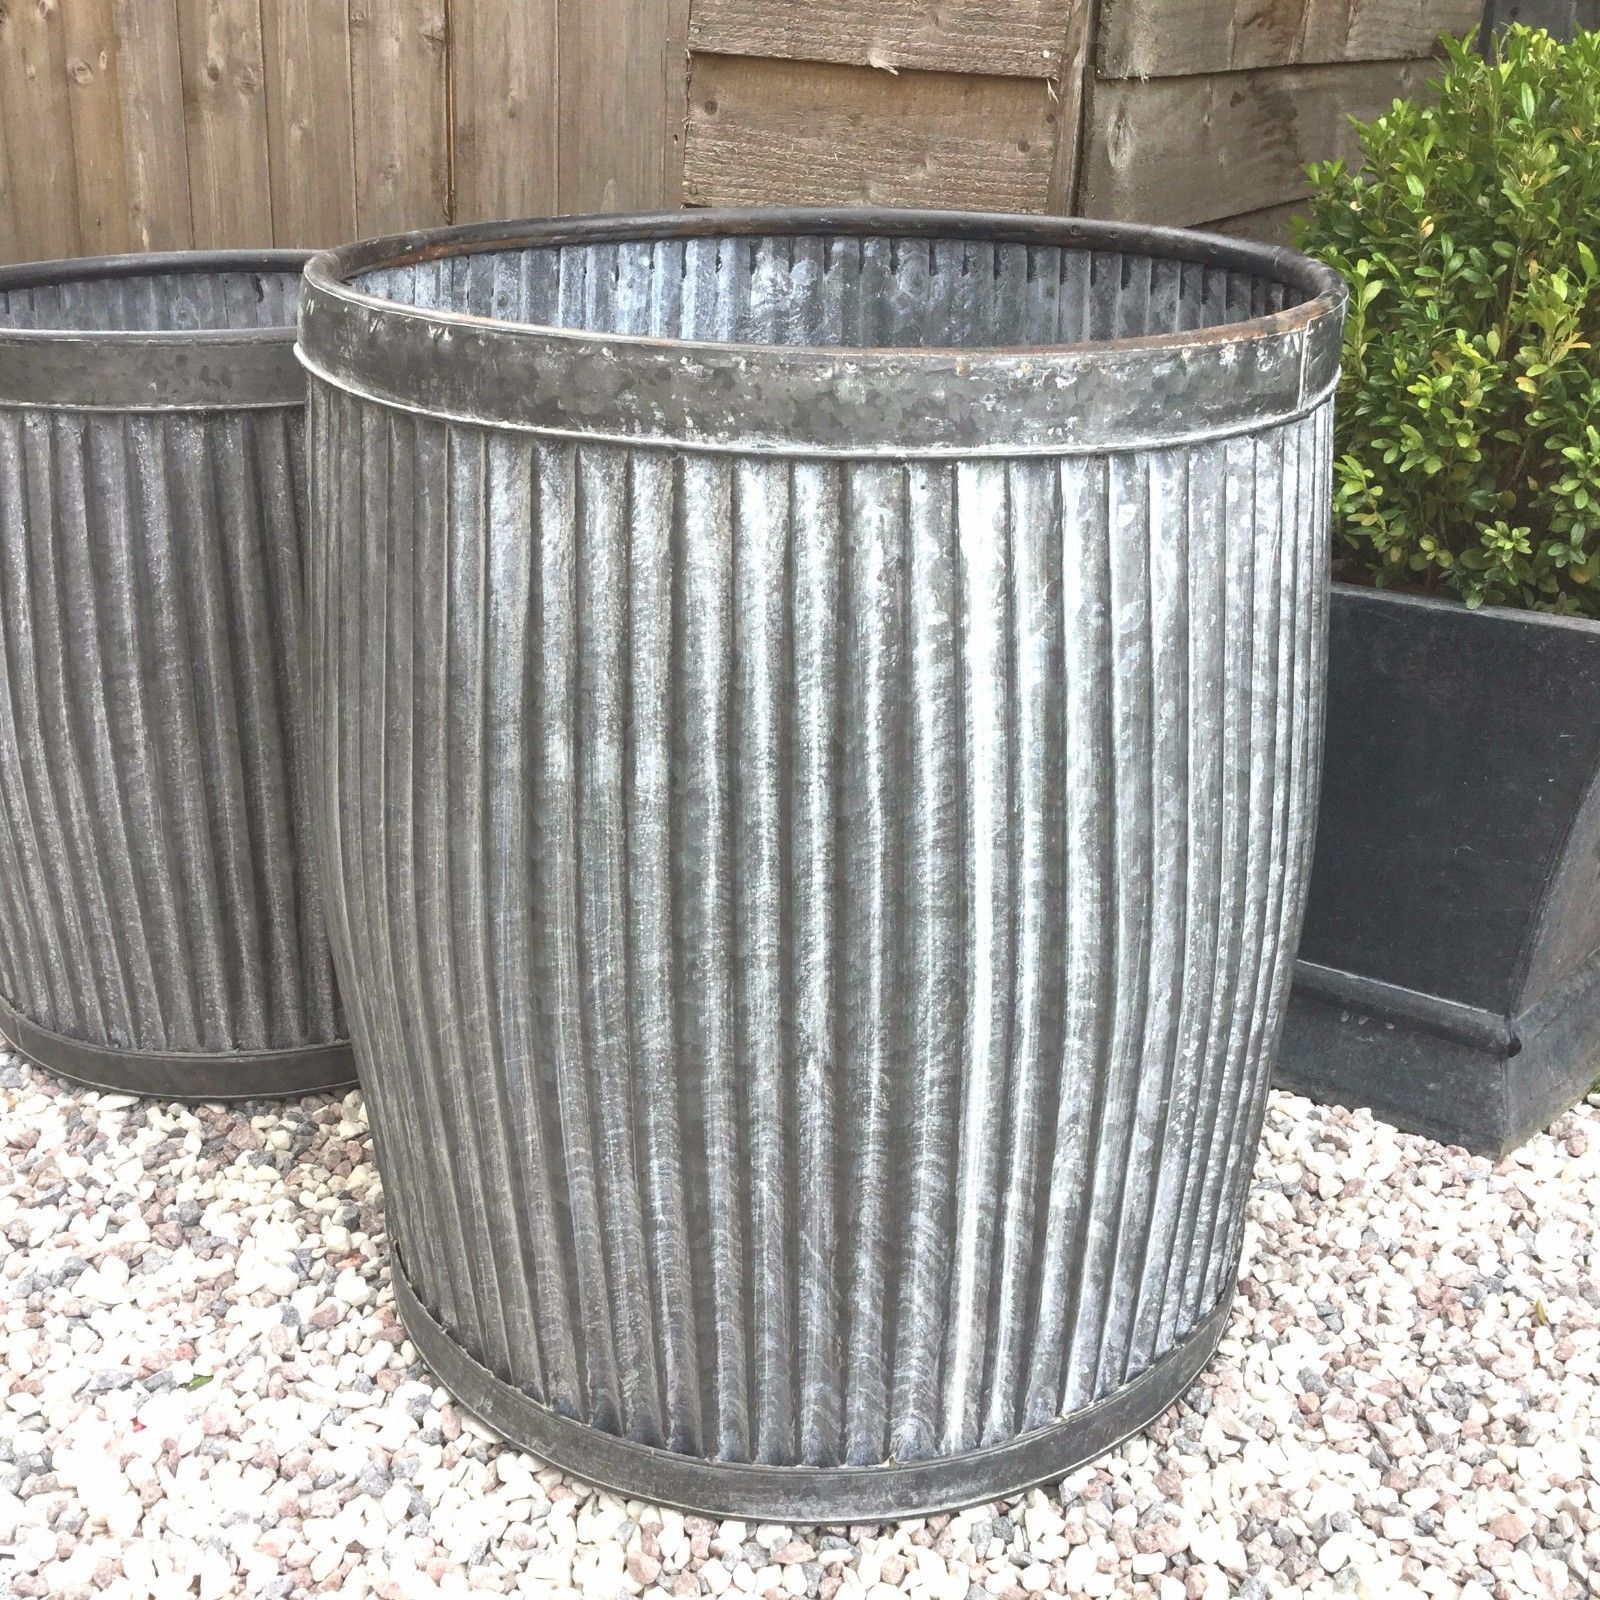 Large Vintage Style Round Galvanised Metal Garden Planter Tub Flower Pot Barrel Ebay Garden Planters Flower Pots Galvanized Metal